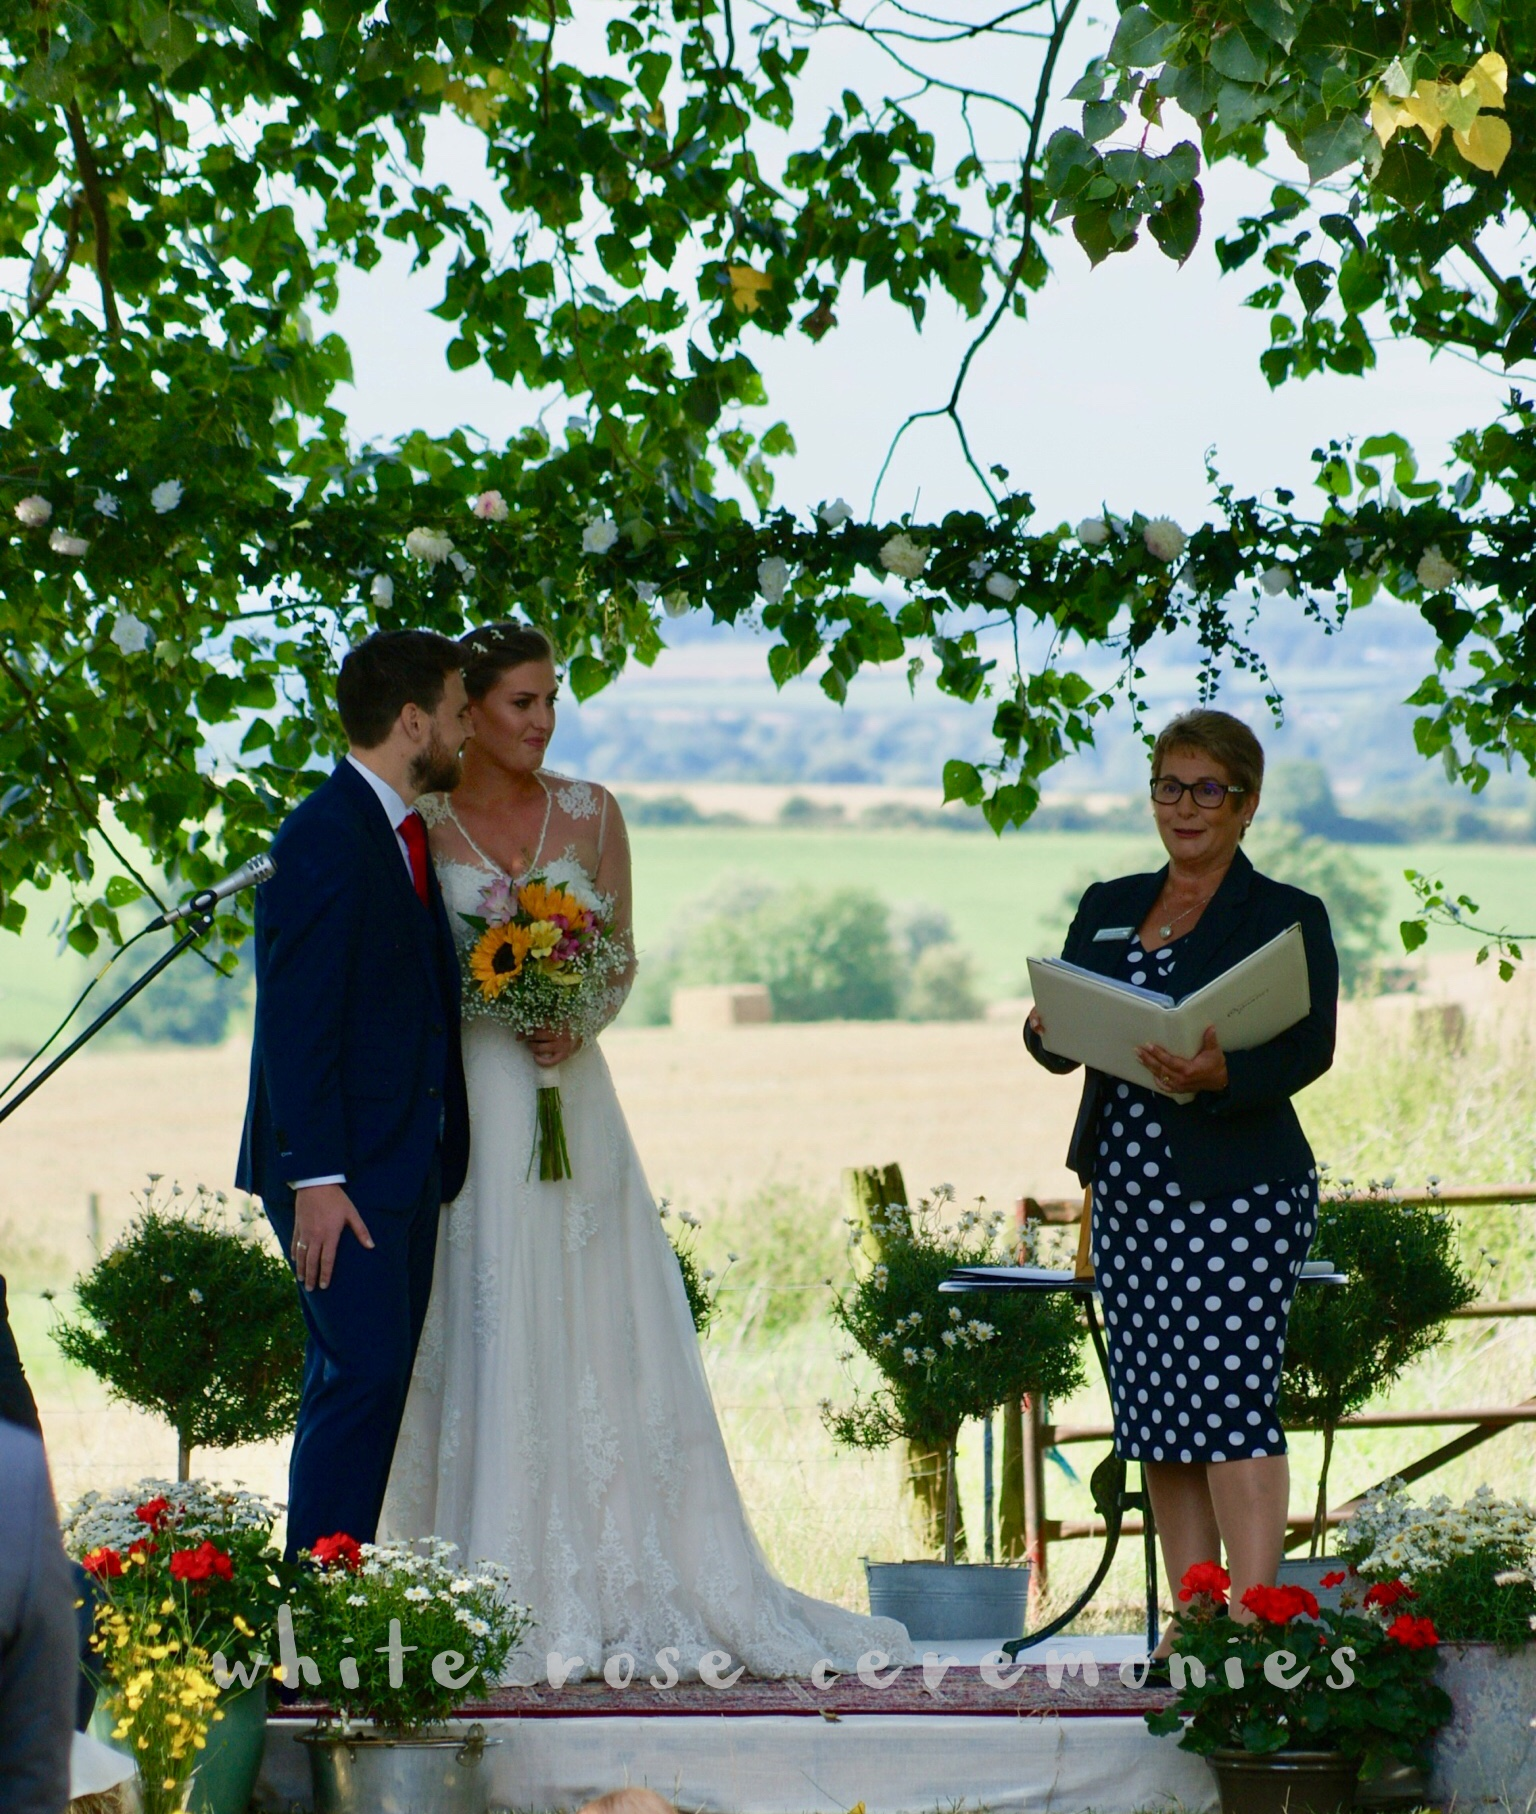 Who Can Conduct Your Wedding Ceremony?